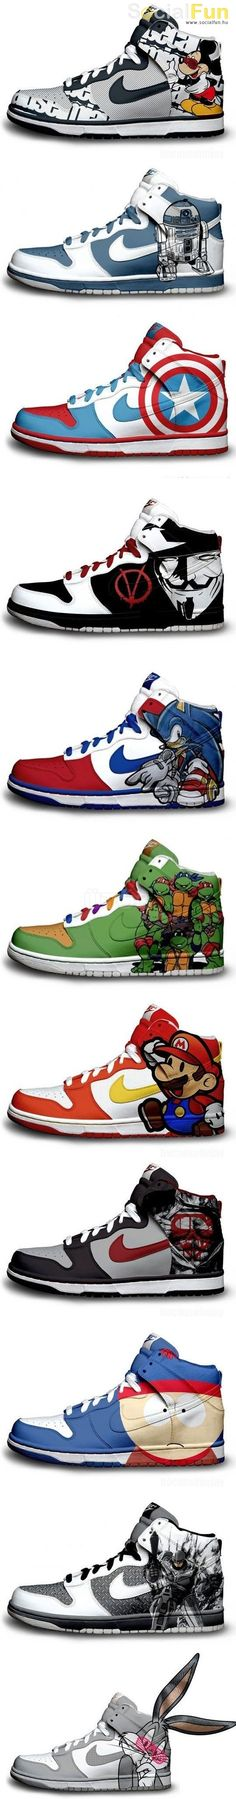 peter will soon add these to his shoe collection...